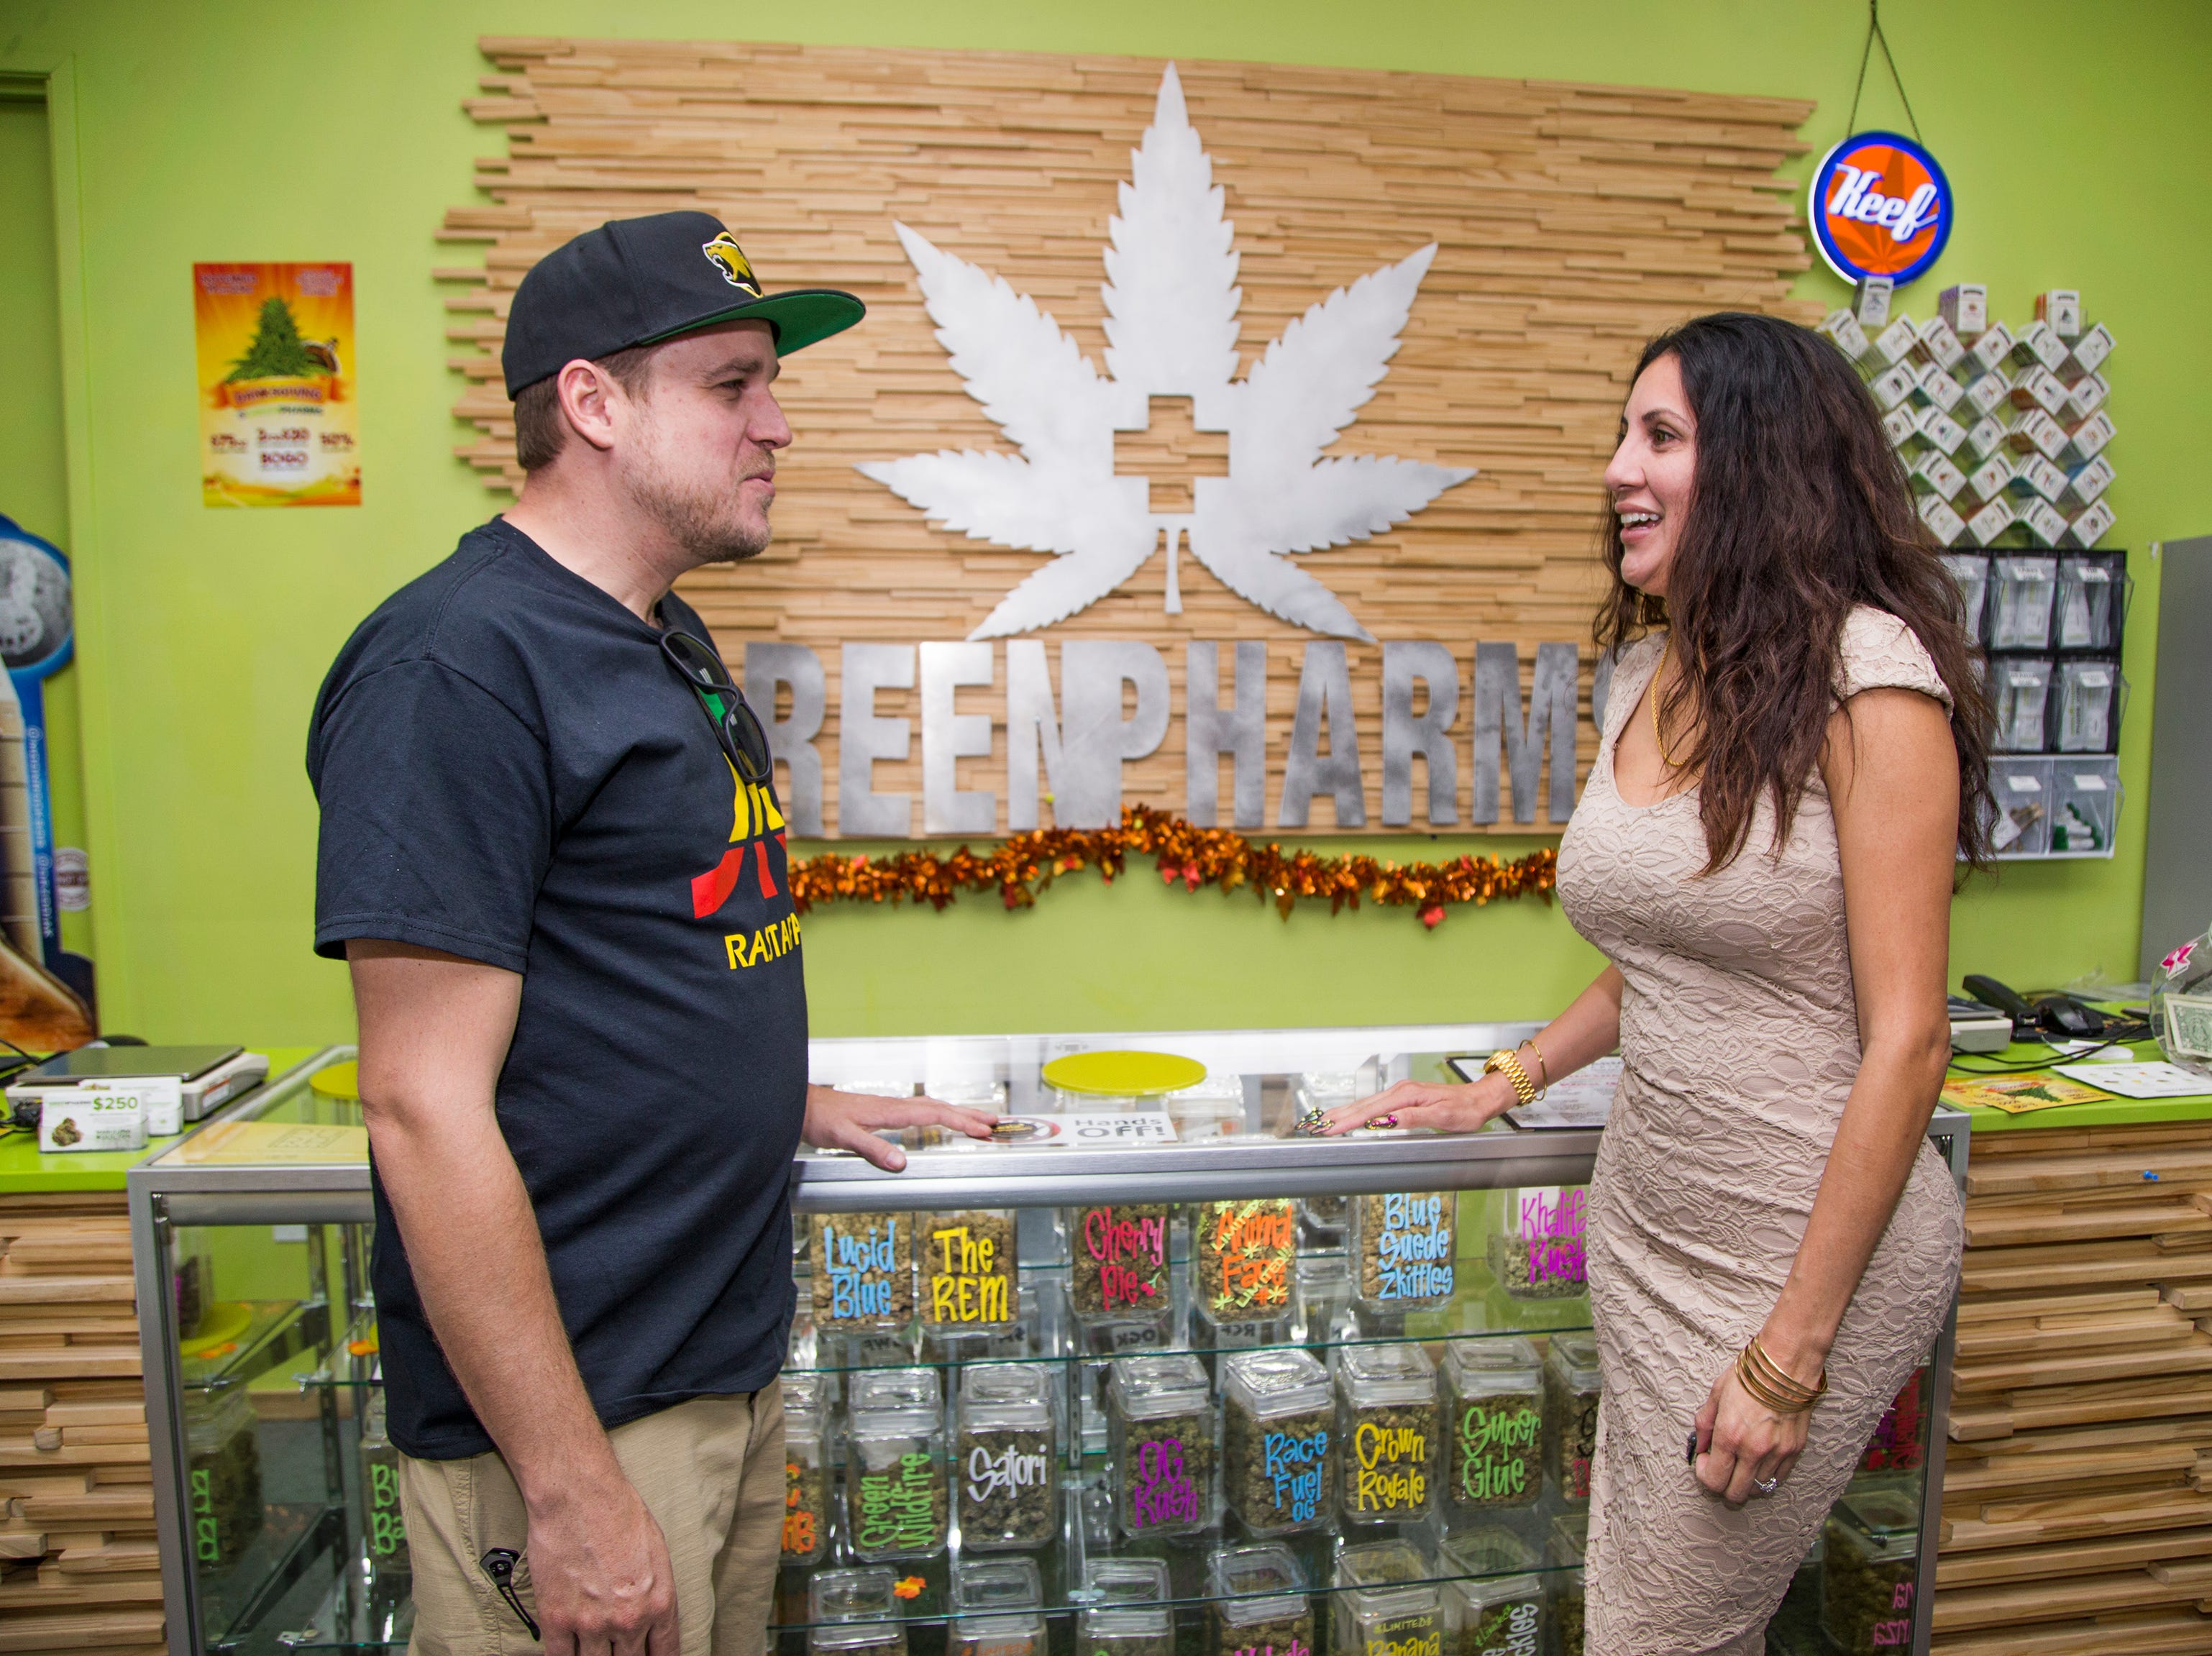 Marie Paredes Saloum, owner of GreenPharms Dispensary, speaks with customer Trevor Donaldson in the store in Mesa on Nov. 13, 2018.